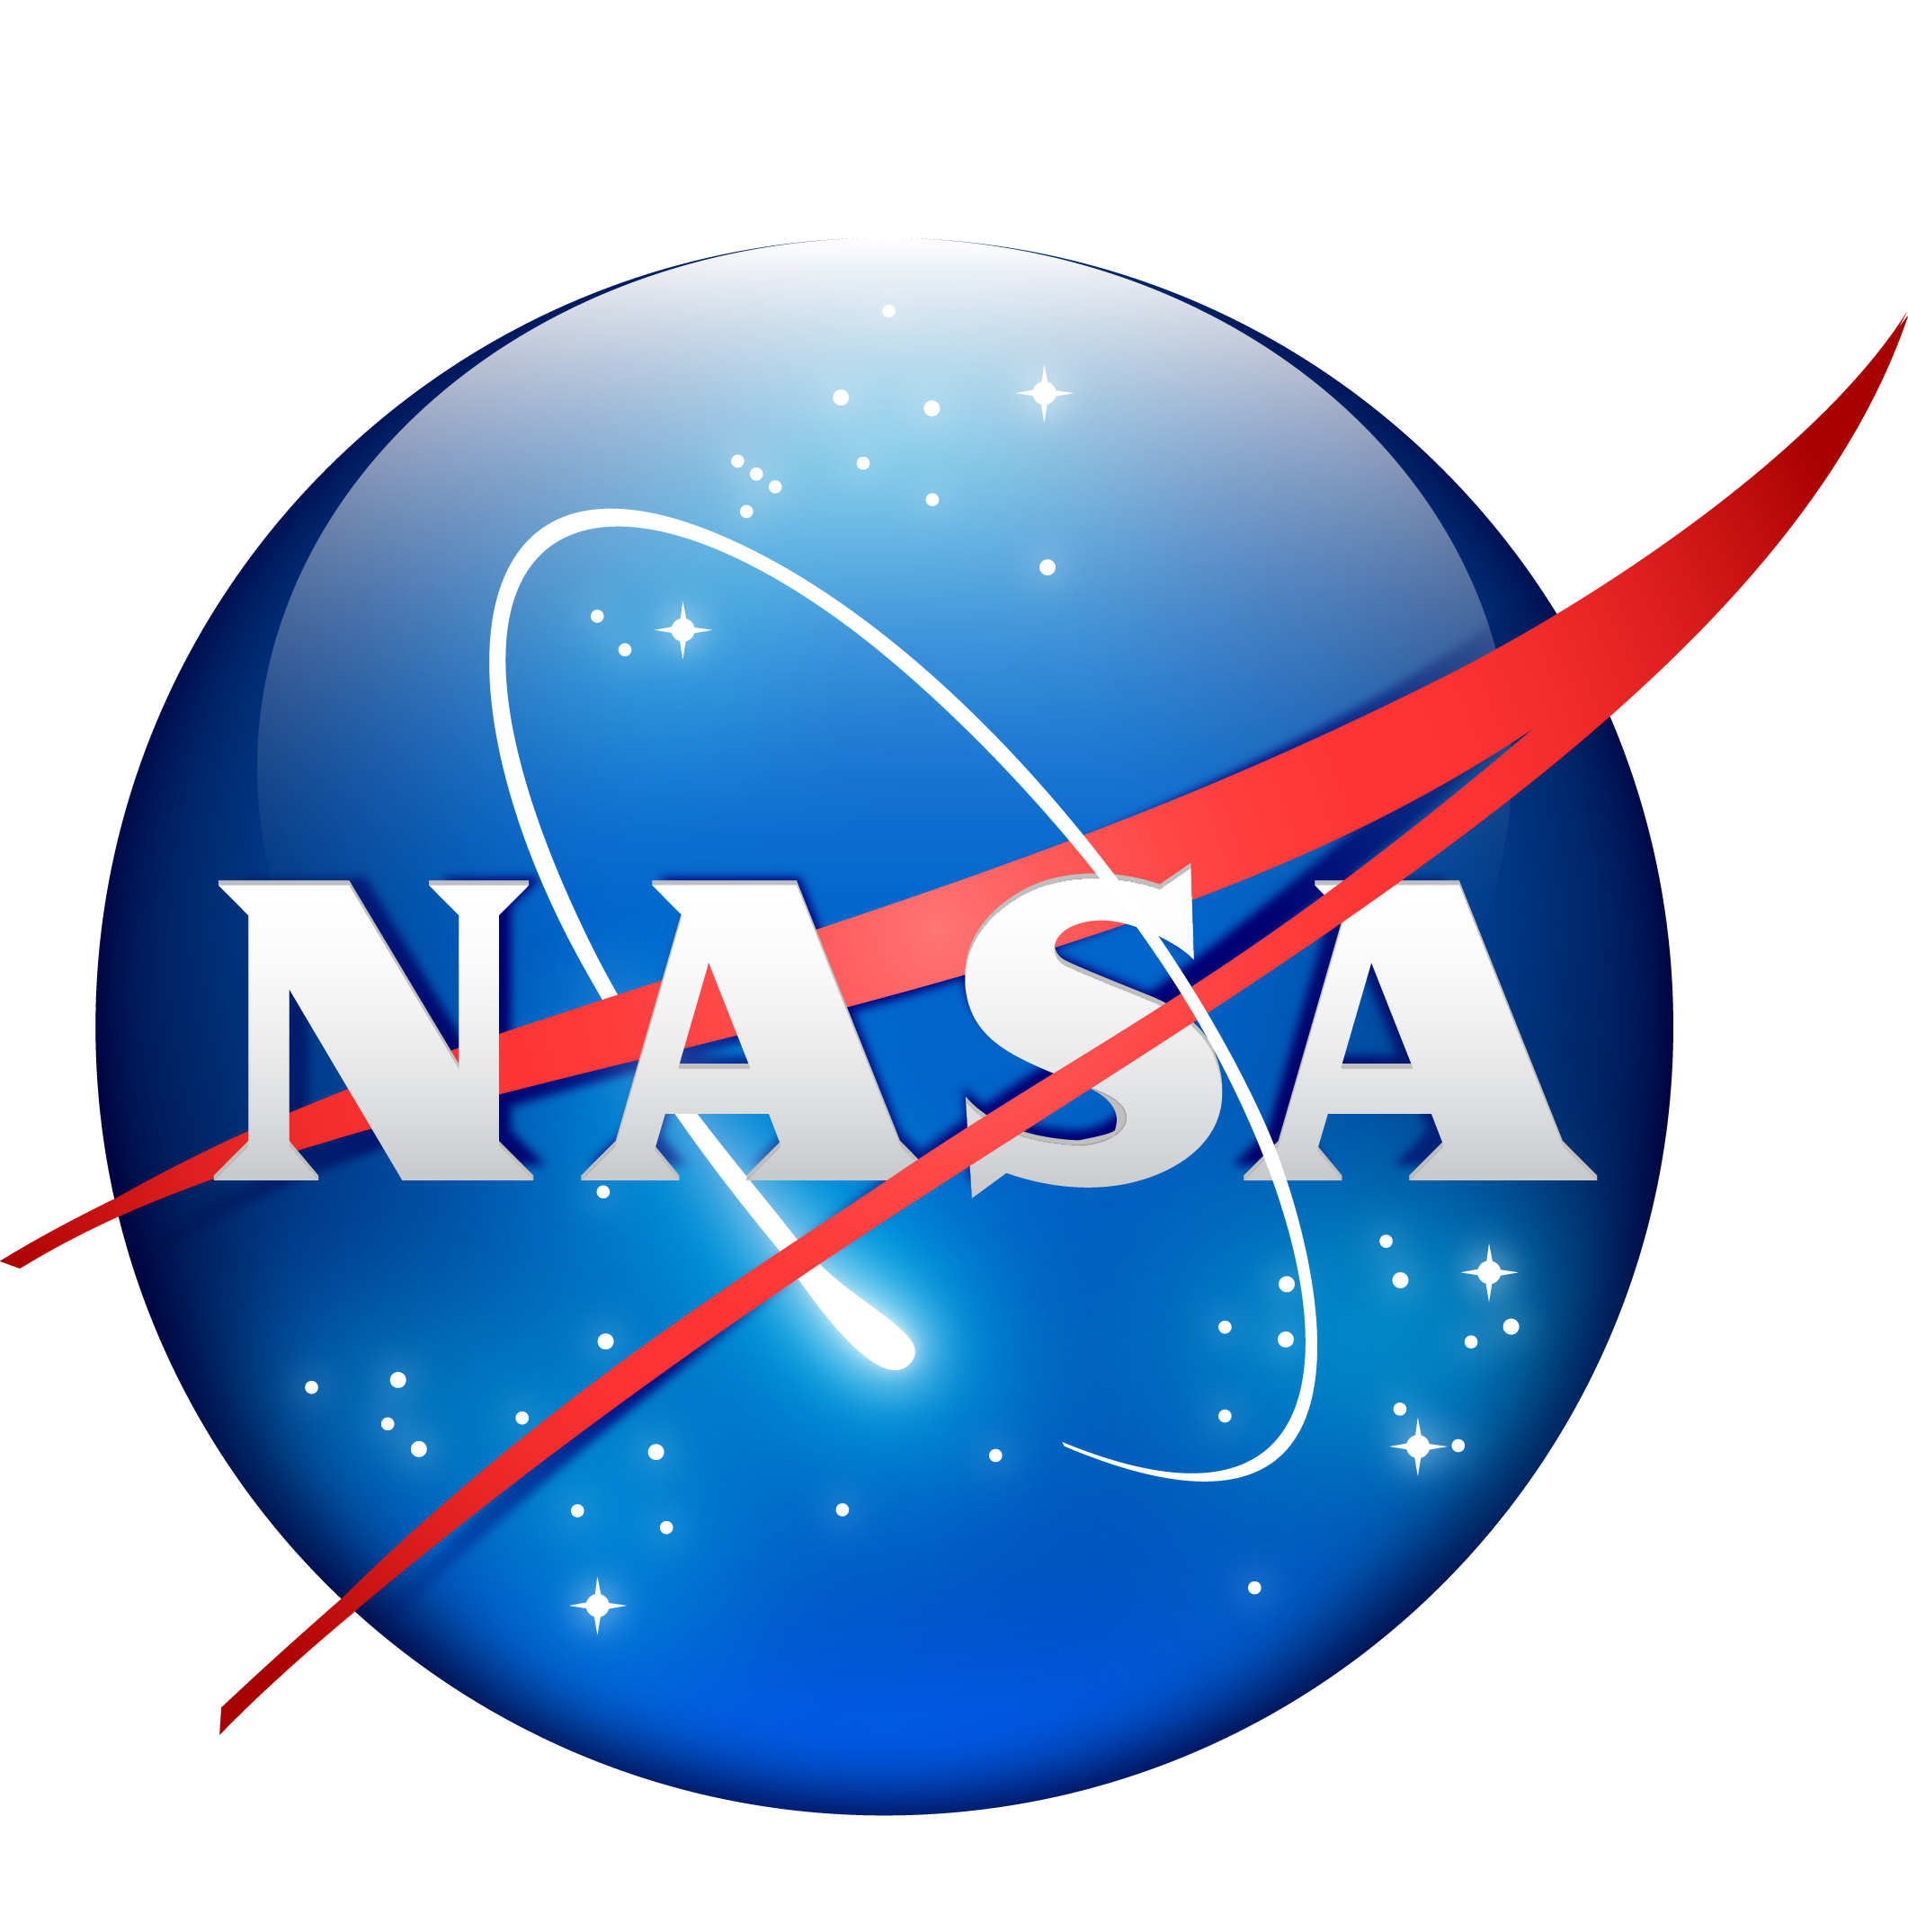 nasa clip art - photo #27